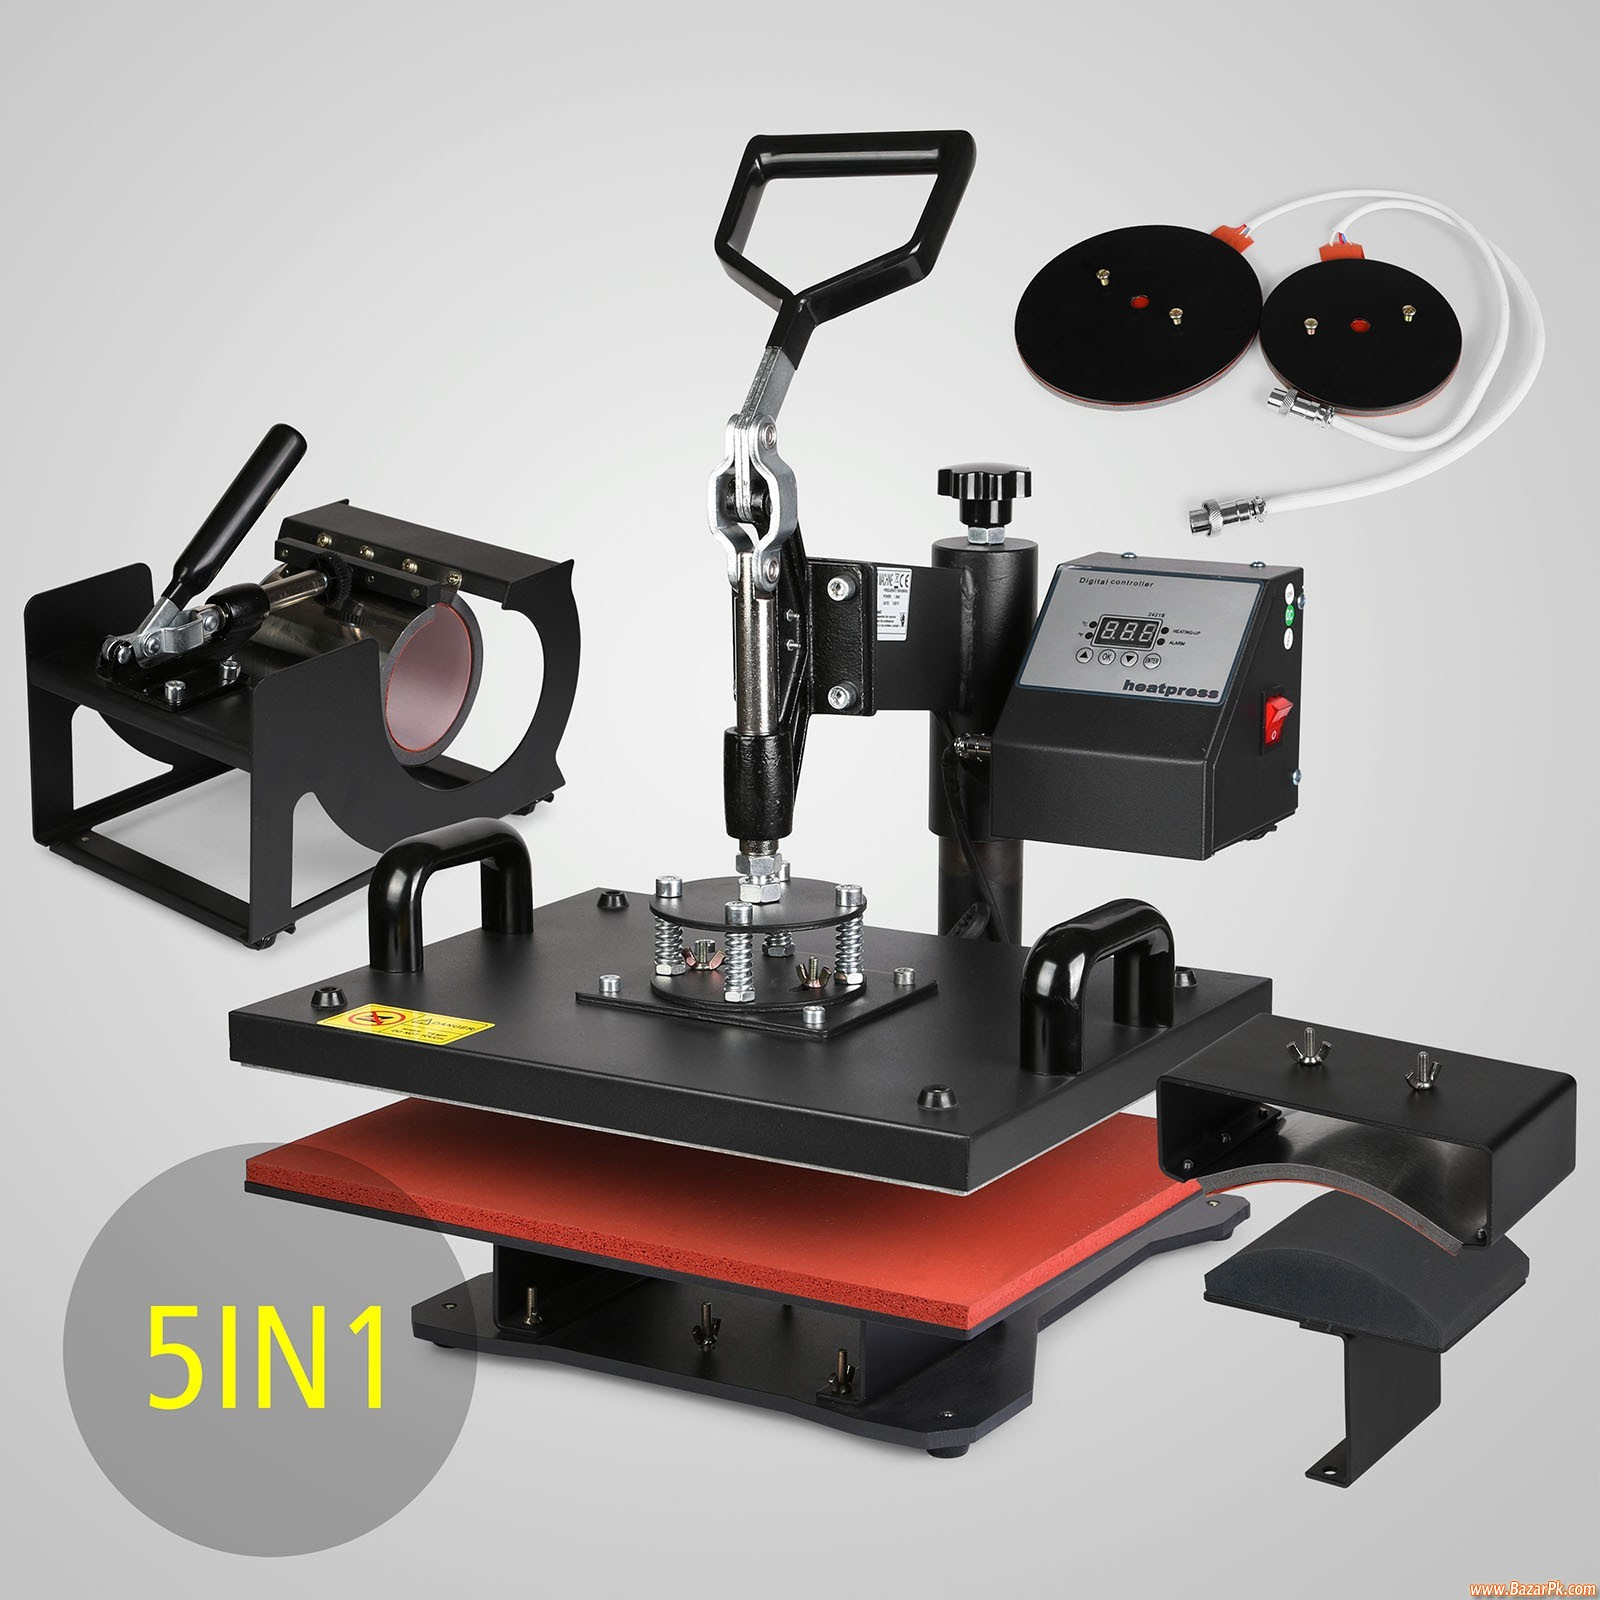 5 In 1 Heat Press Sublimation Machine - Business and Professional